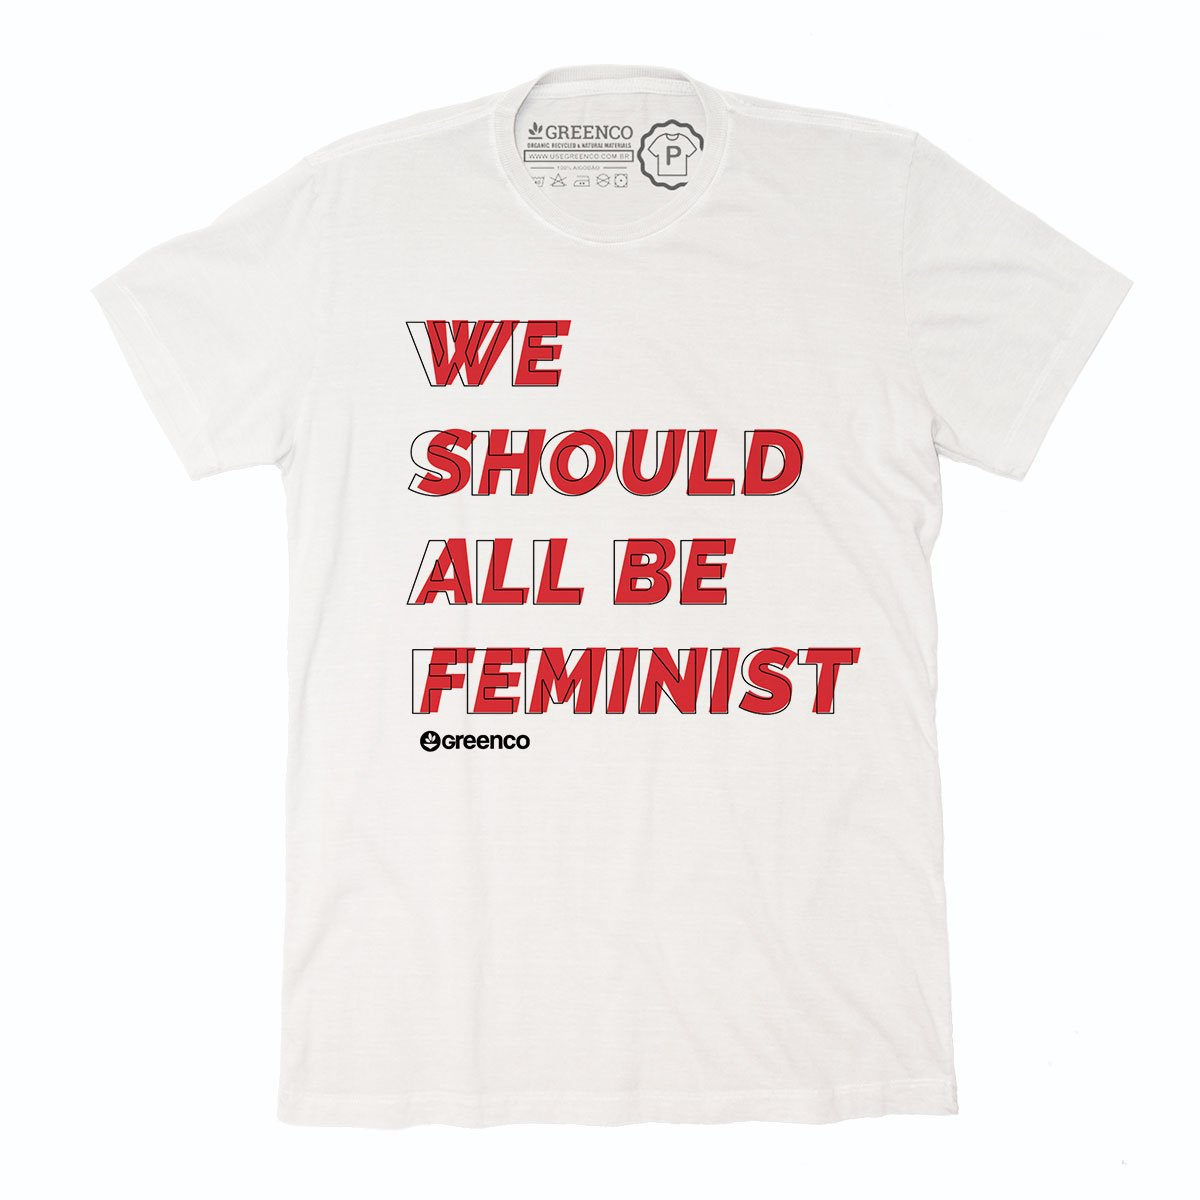 Sustainable Cotton Men's T-Shirt - We Should All Be Feminist